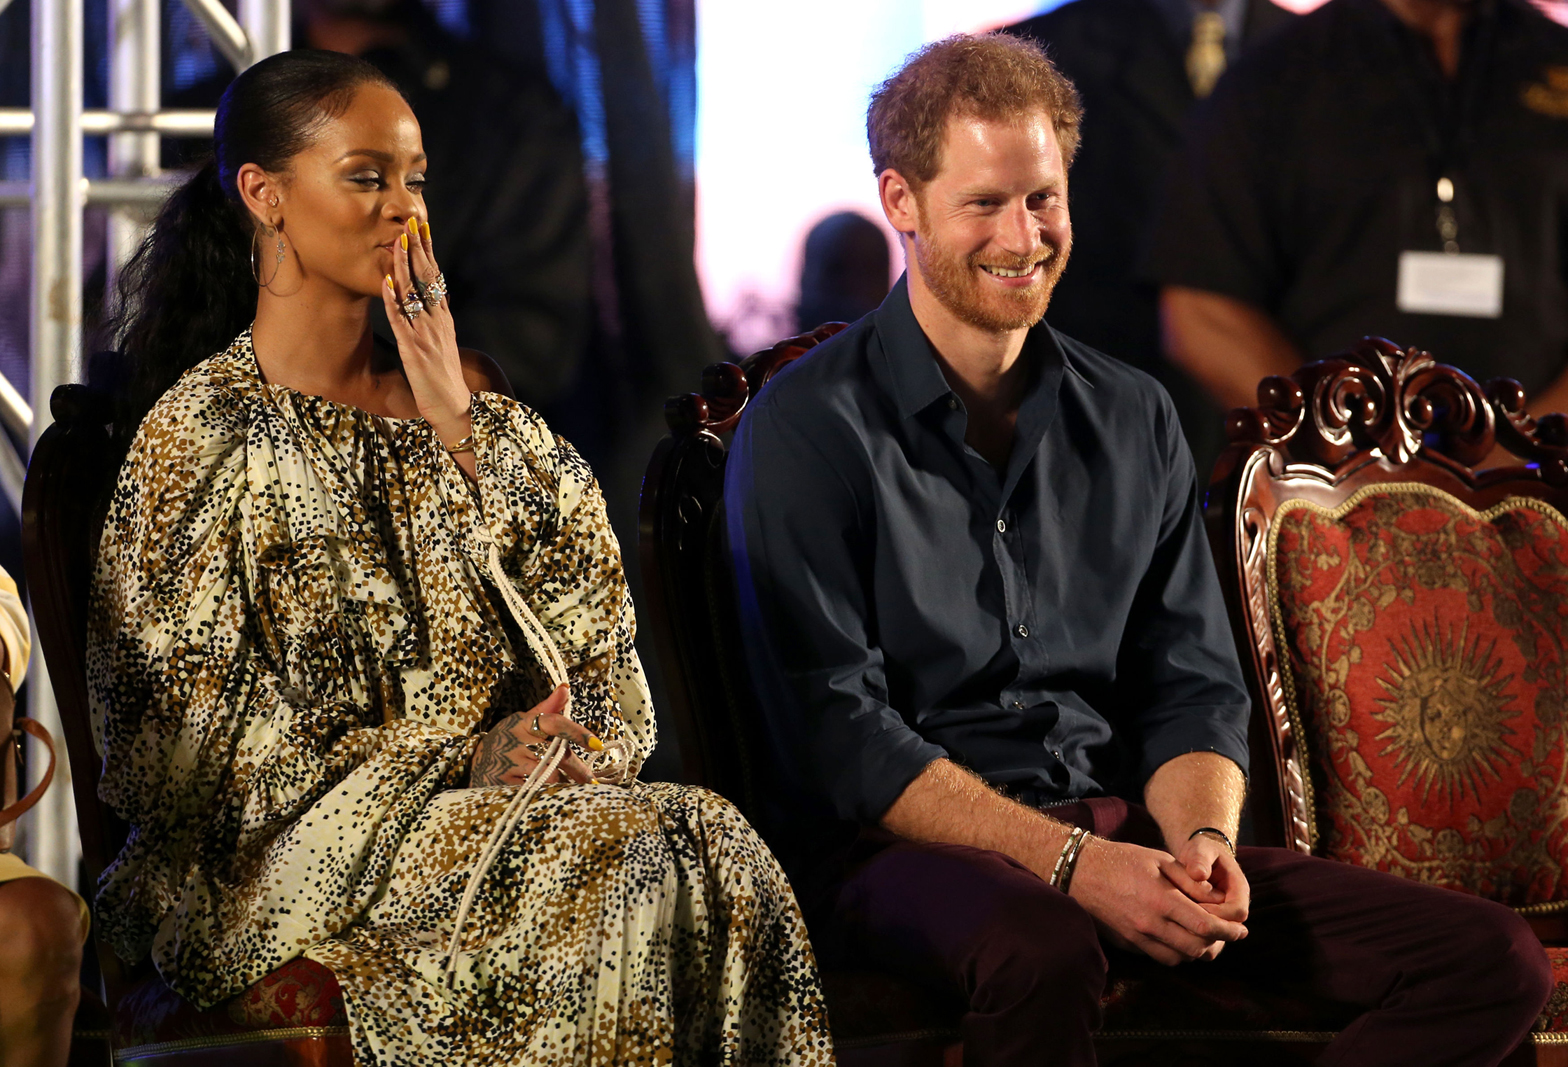 Rihanna and Prince Harry meet at Barbados celebration